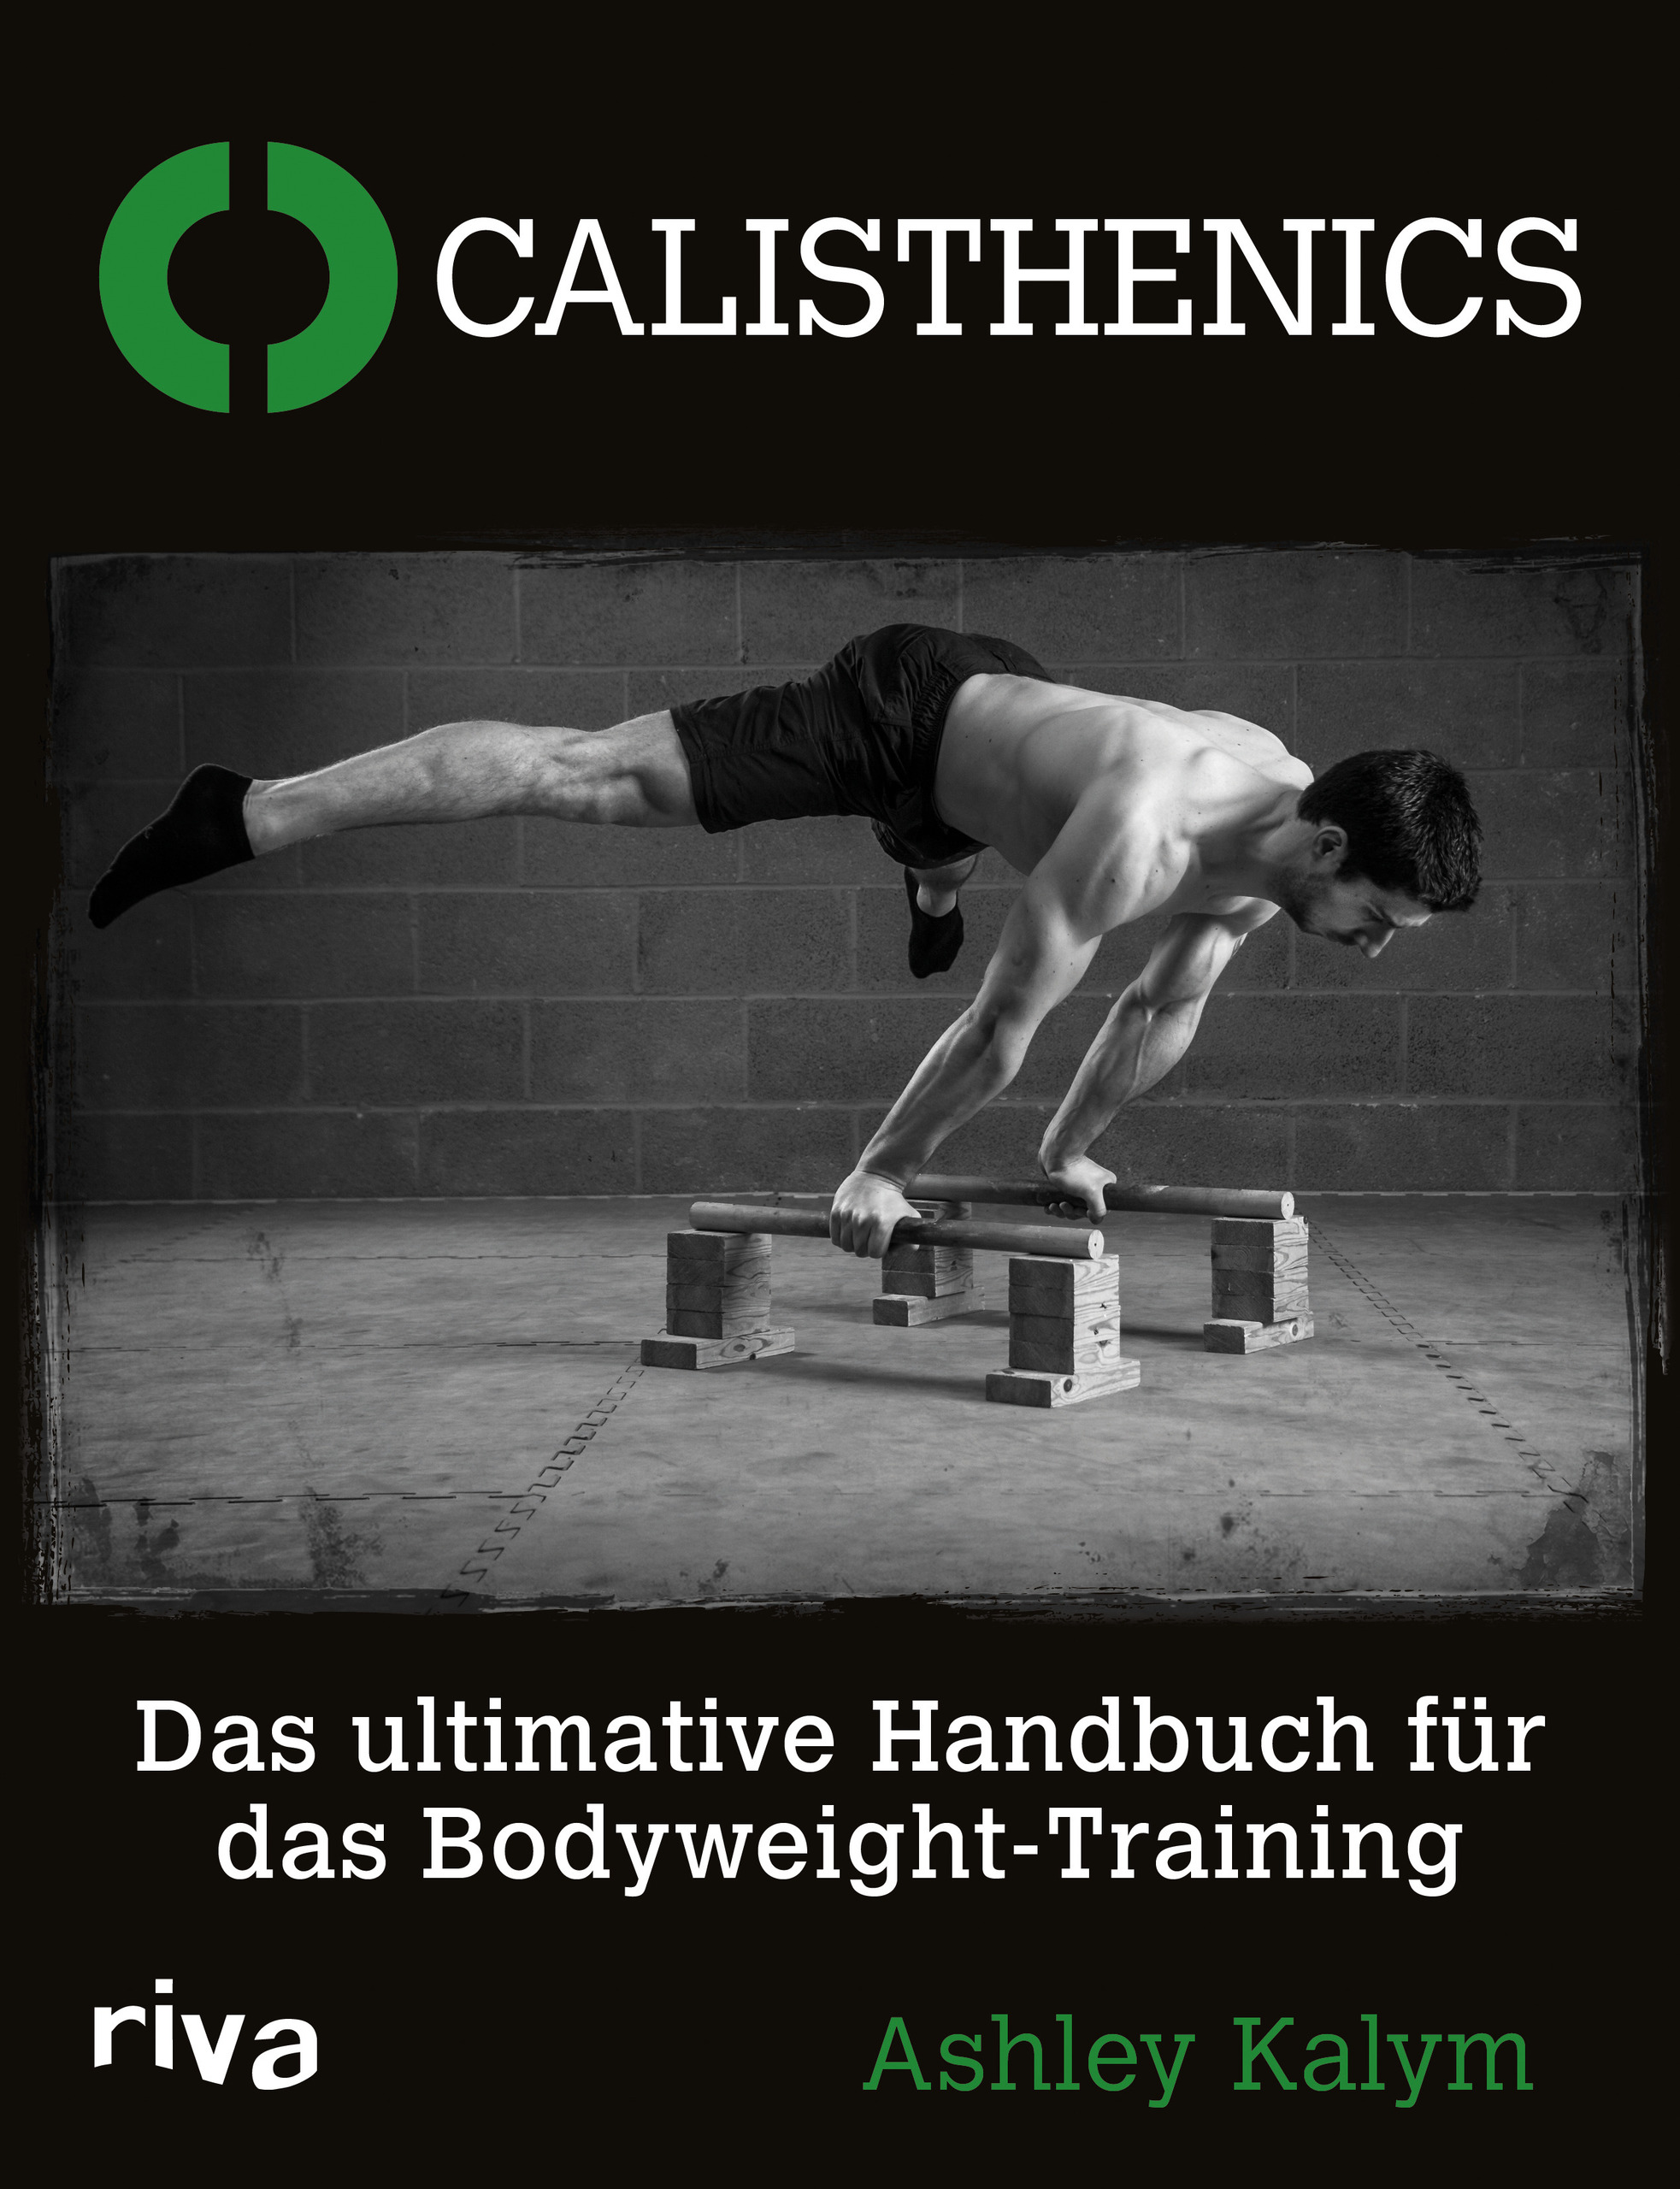 Calisthenics: Das ultimative Handbuch für das Bodyweight-Training - Kalym, Ashley